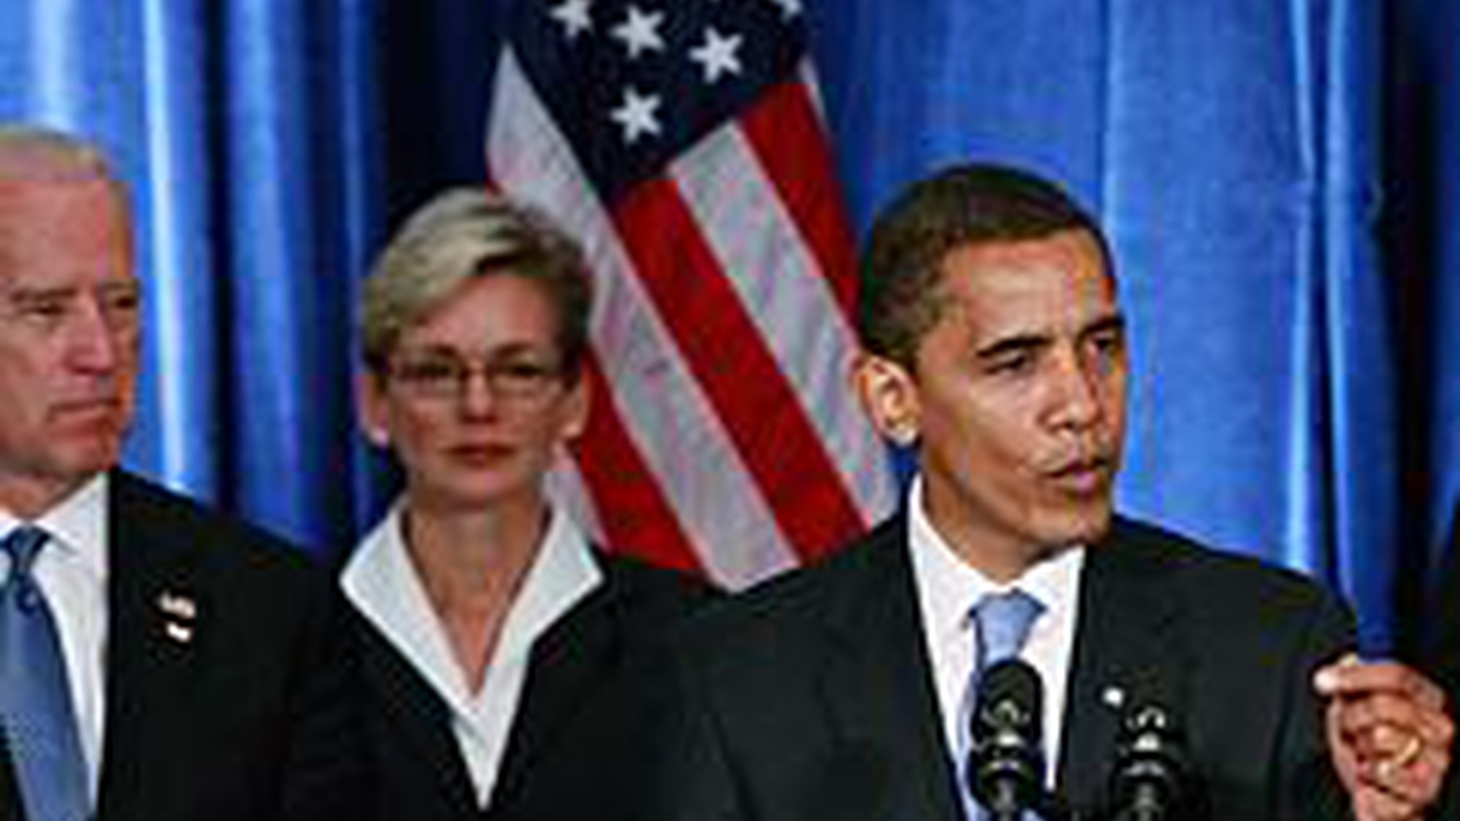 Barack Obama has said the economic crisis means that a range of